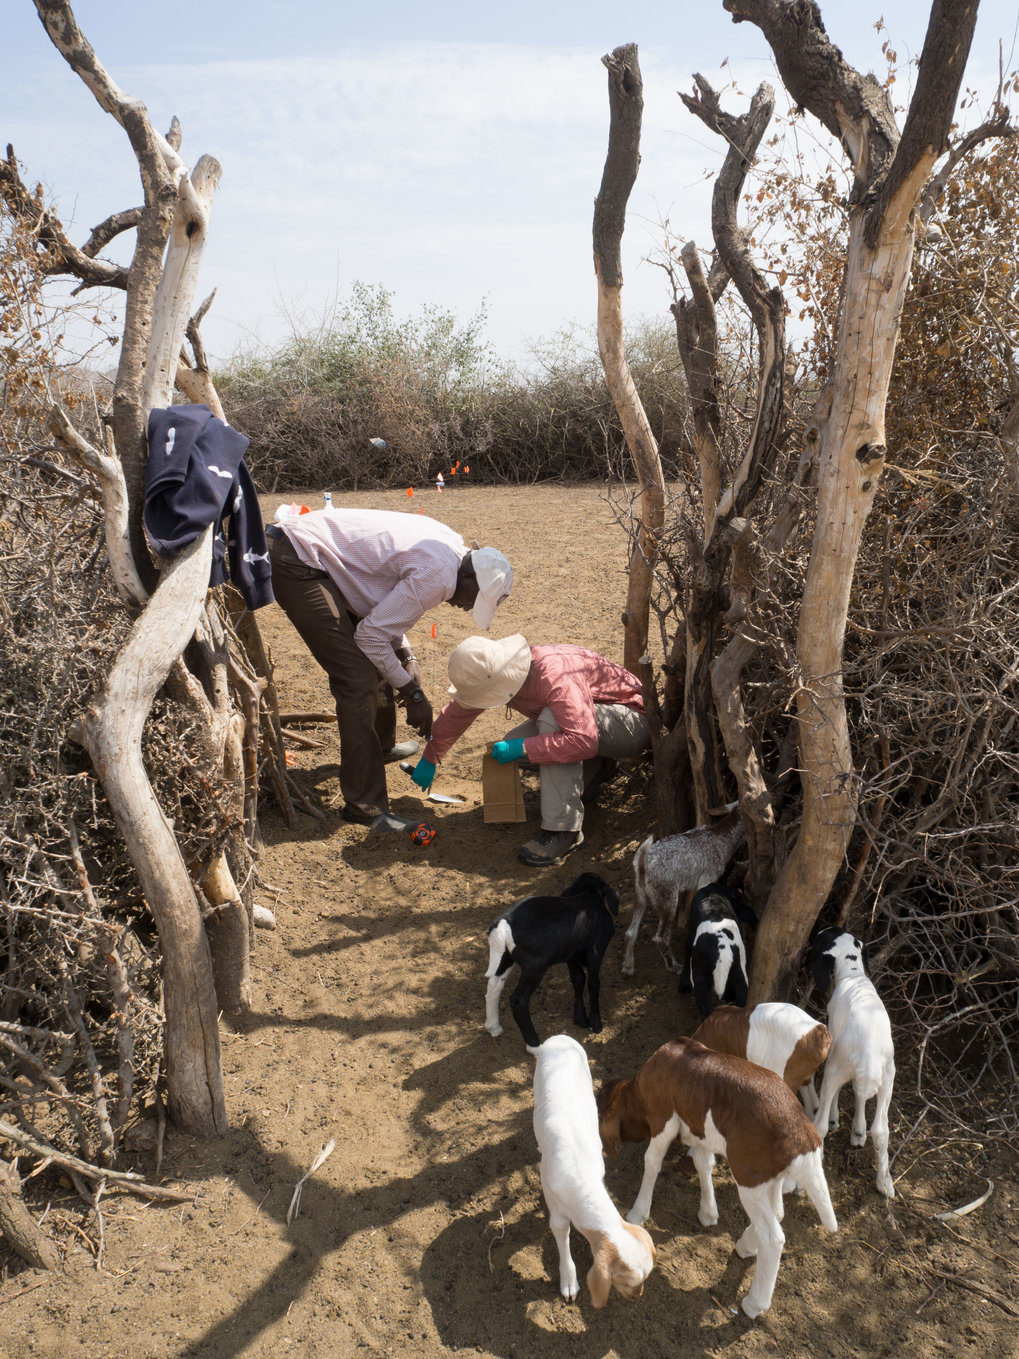 Dung sampling for faecal biomarker analyses from an inhabited Maasai Boma (a settlement consisting of a number of people, livestock and dwellings)